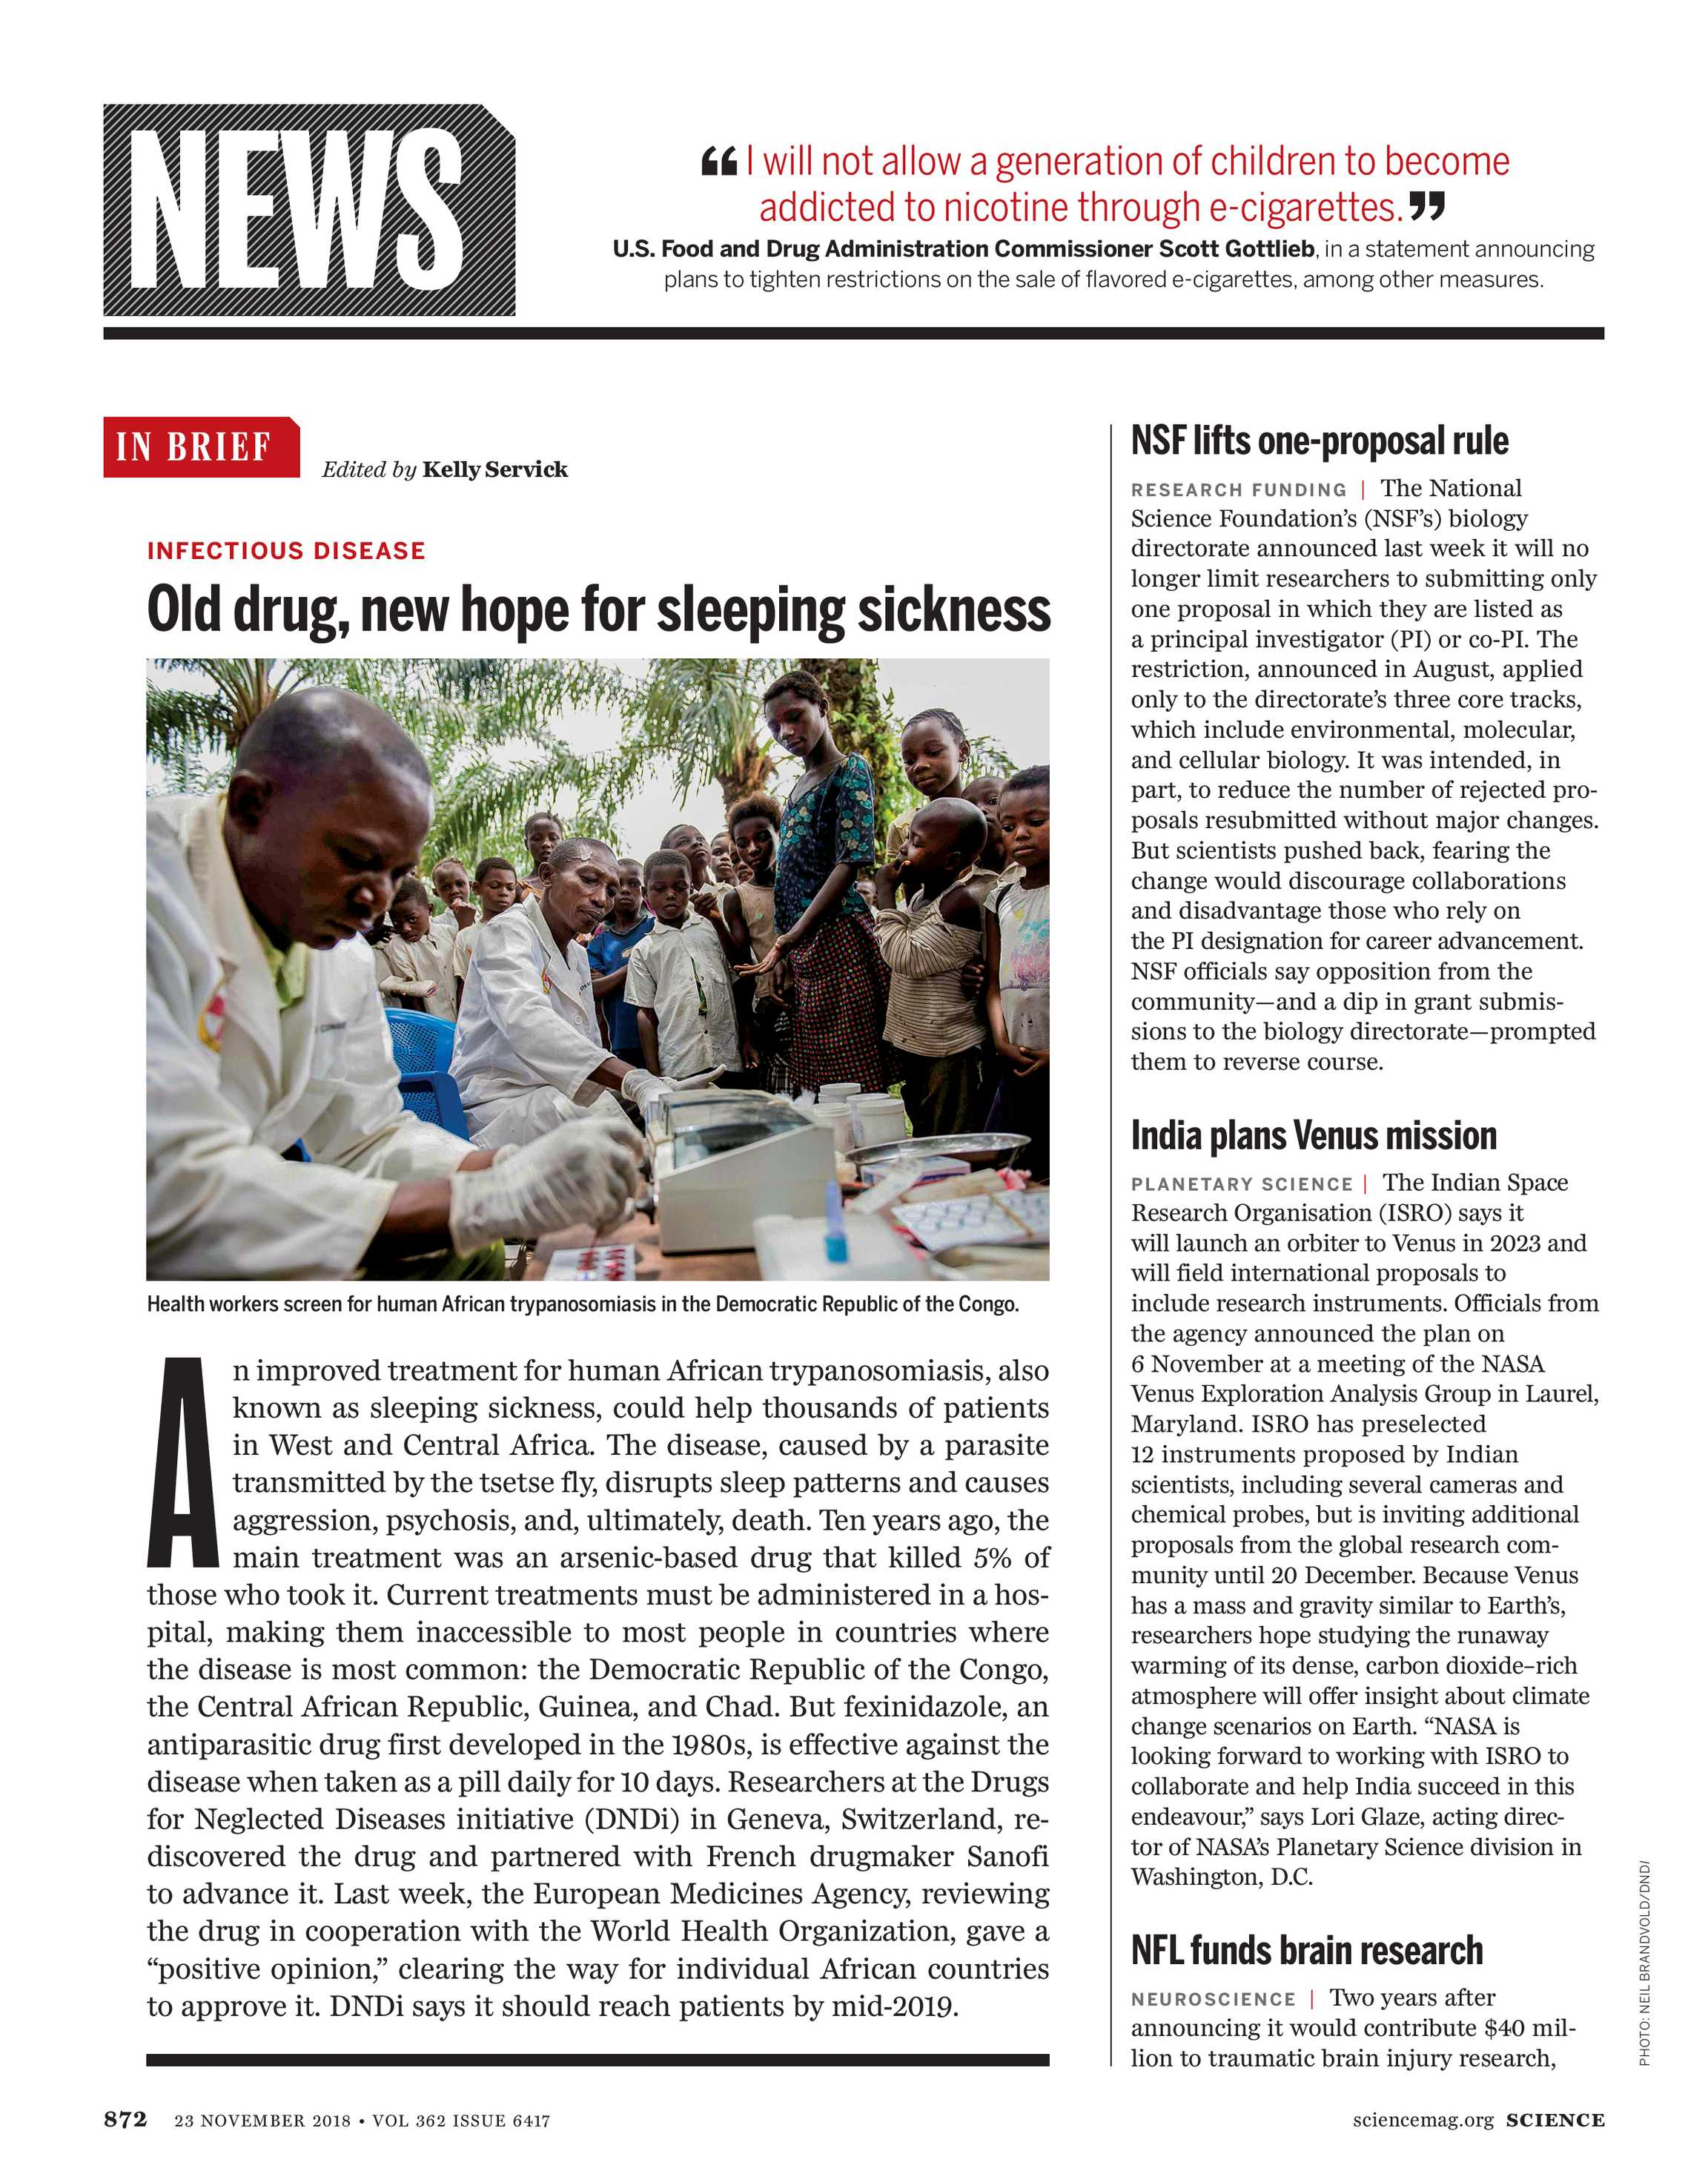 Science Magazine - November 23, 2018 - page 871